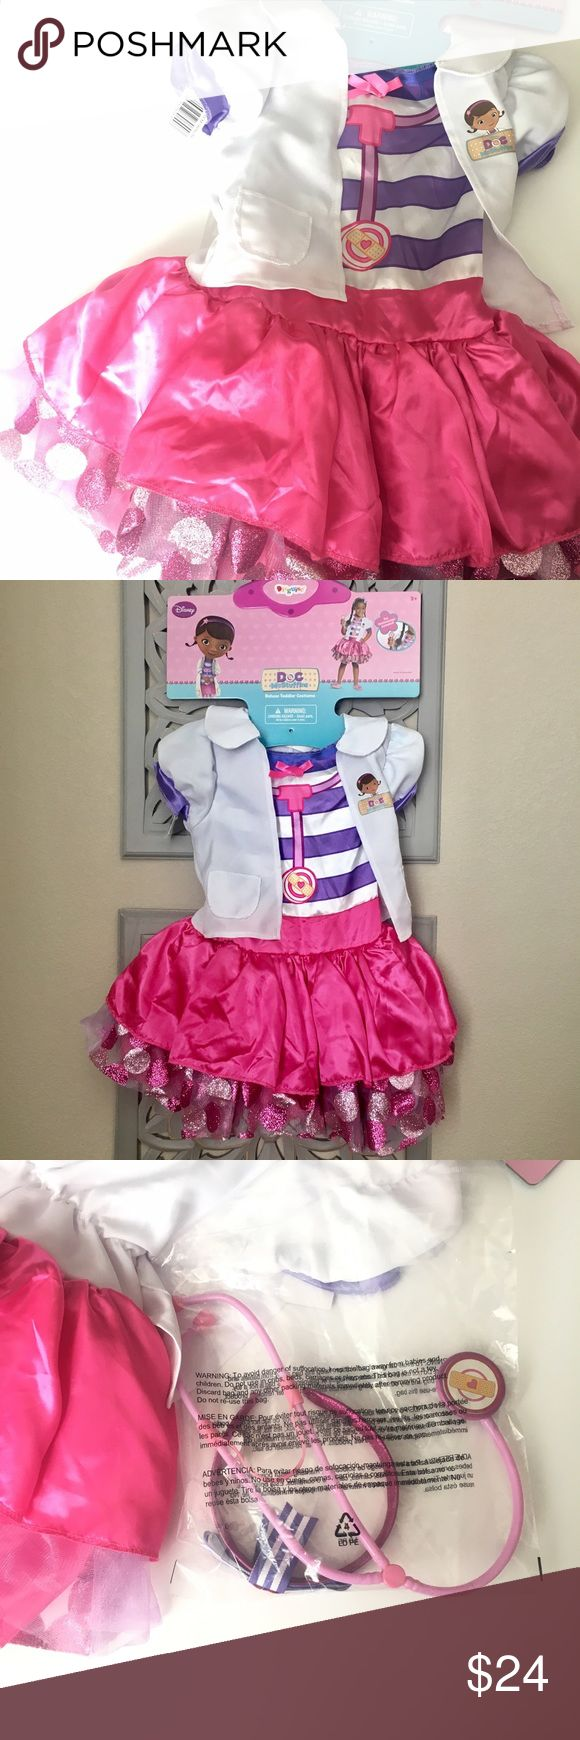 NWT Disney Doc McStuffins Deluxe Toddler Costume NWT Doc McStuffins Deluxe Toddler Costume  •Size: 3+  •Brand new with tags! •Disney Junior Doc McStuffins Character  •Also Includes Headband & Toy Stethoscope   Ships same or next day from a Smoke-Free home! Disney Costumes